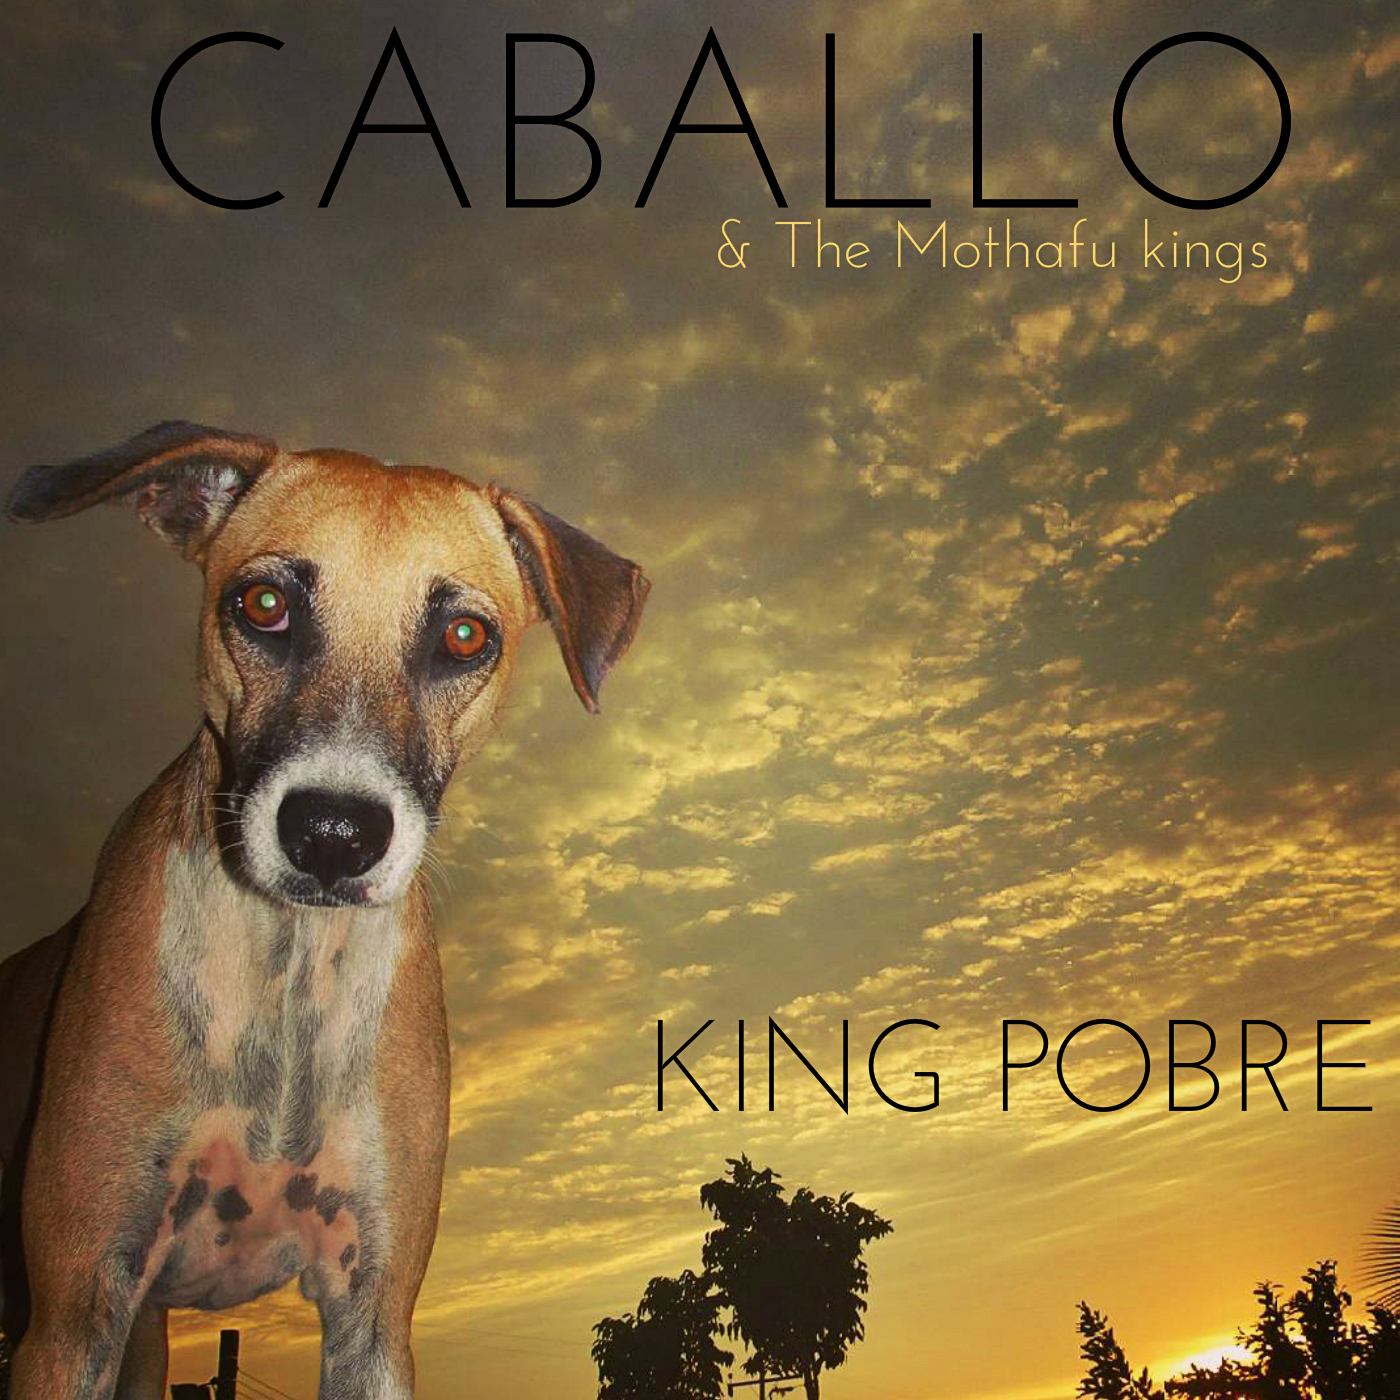 Caballo is back to the global scene with a new Ep called King Pobre. Check the video feat Major Lazer and grab it for FREE